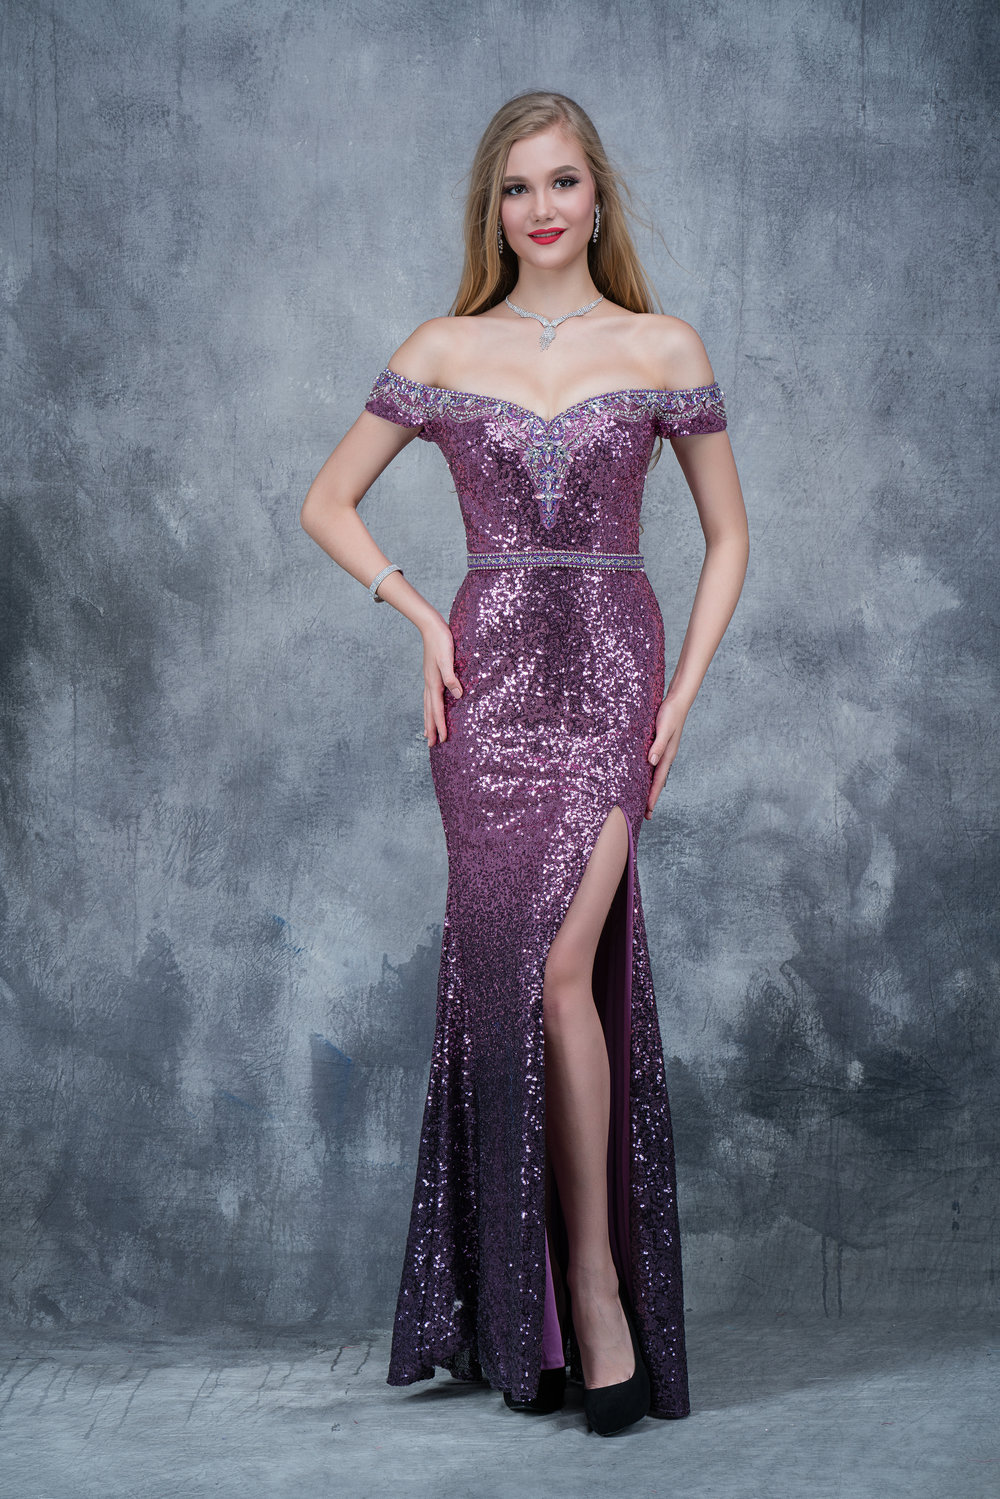 1361_PURPLE 14648 copy.jpg